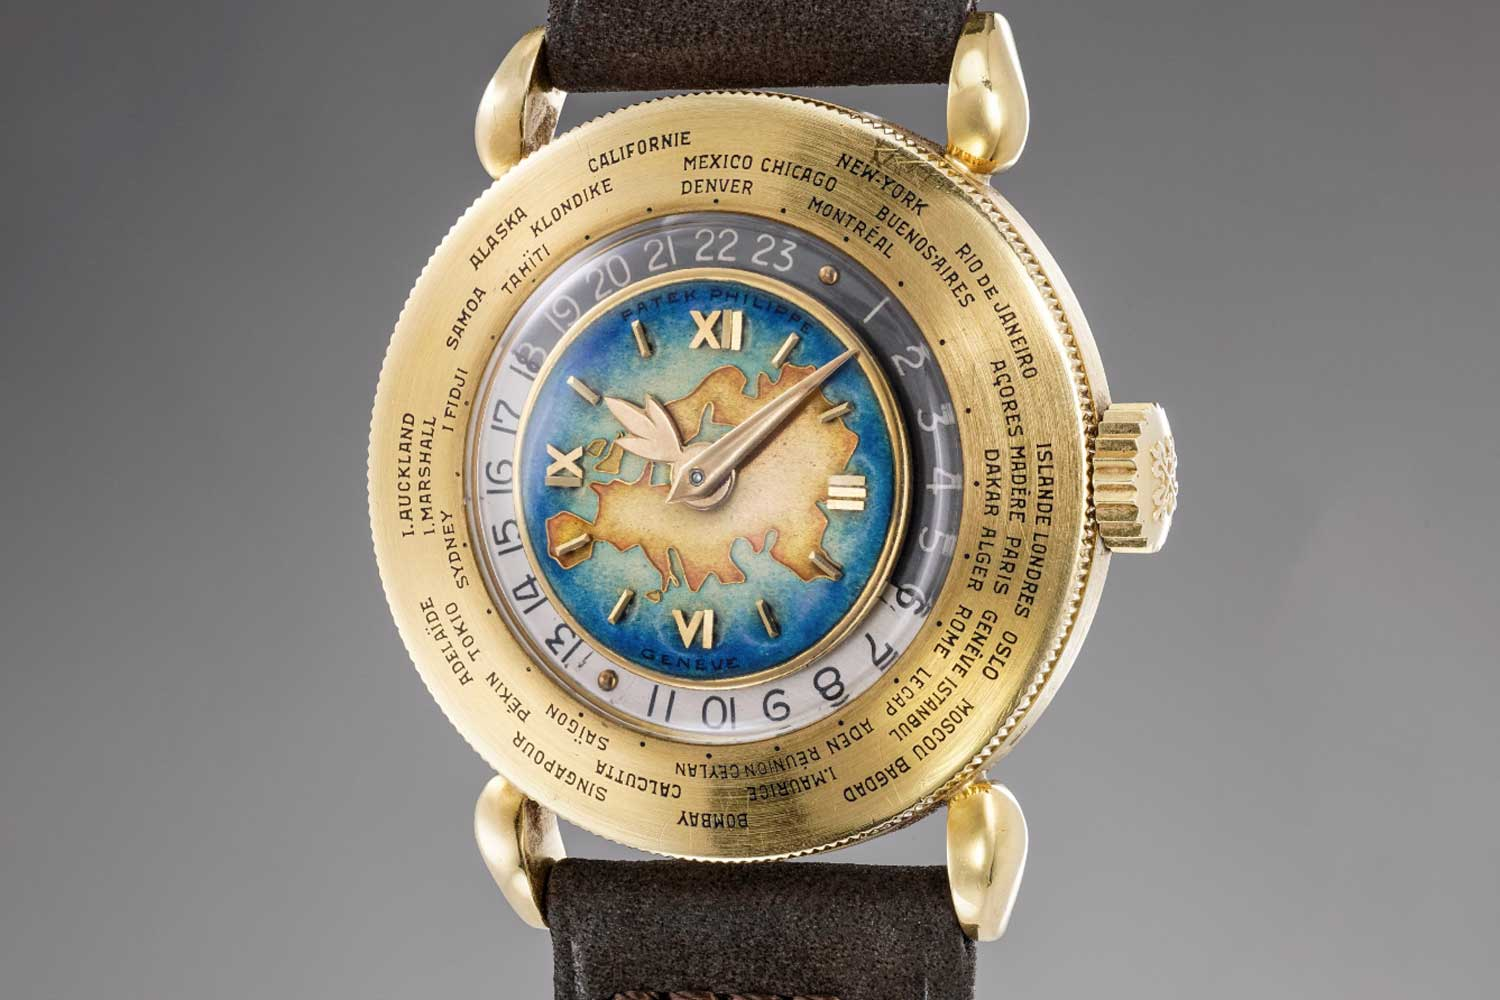 """Most of the references 1415 with cloisonné enamel dials feature the European continent with only two known examples featuring a Euro-Asian or """"Eurasia"""" map. Seen here is a rare example of the """"Eurasia"""" polychrome cloisonné enamel dial ref. 1415 sold by Phillips in 2018 (image: Phillips)"""